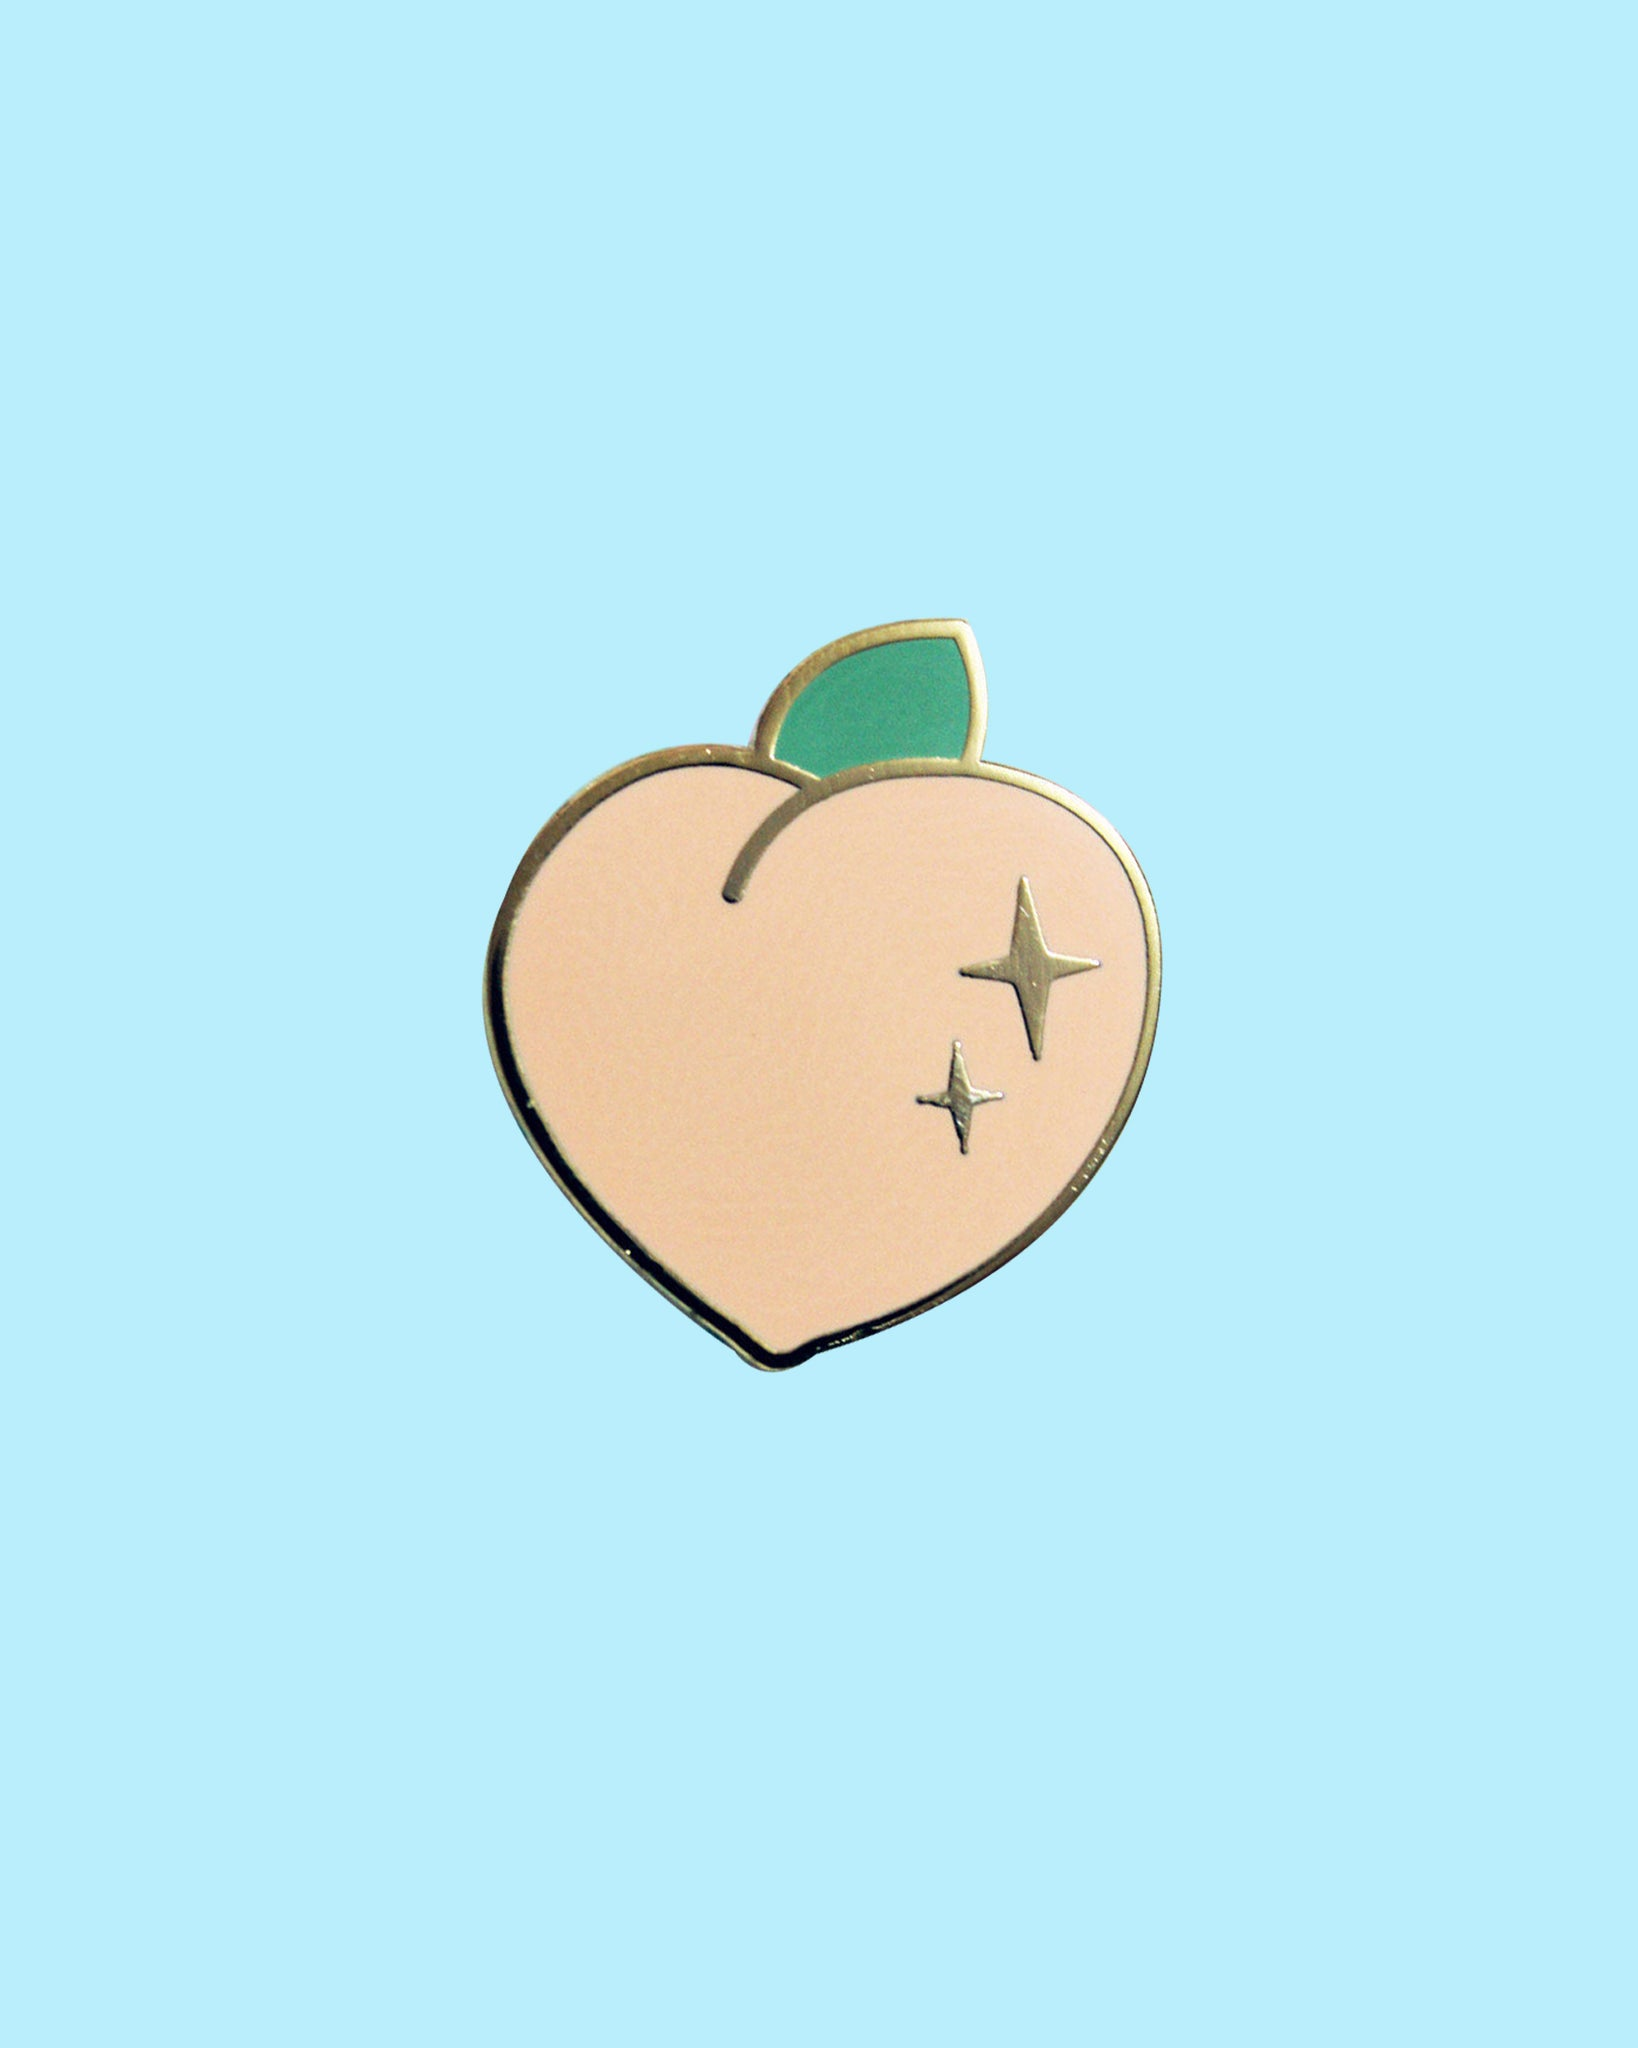 Peach Enamel Pin - Pastel Sparkle Peach Hard Enamel Pin - Aesthetic Kawaii Cute